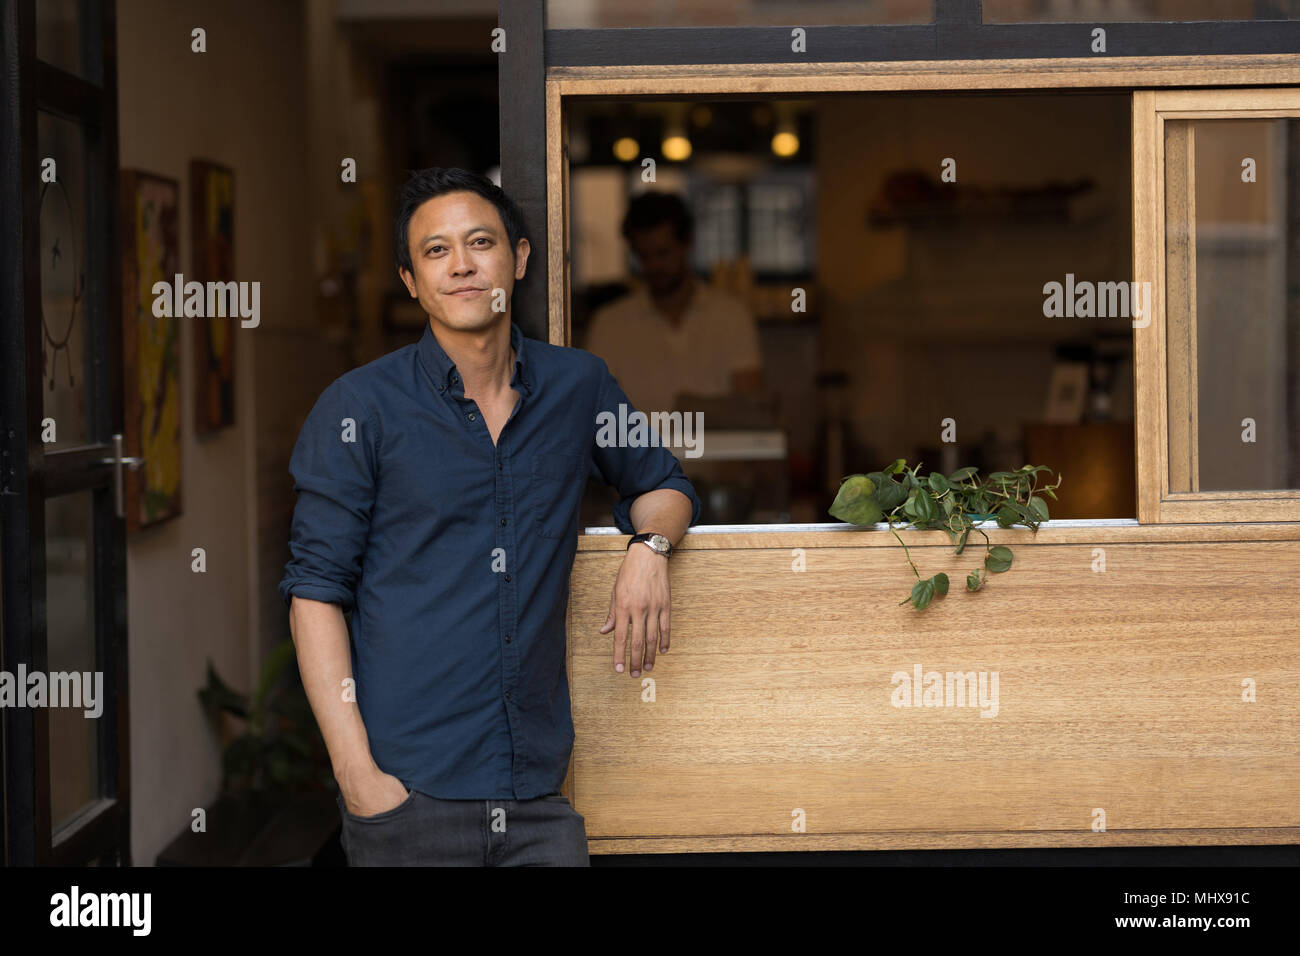 Businessman standing near window in the cafe - Stock Image